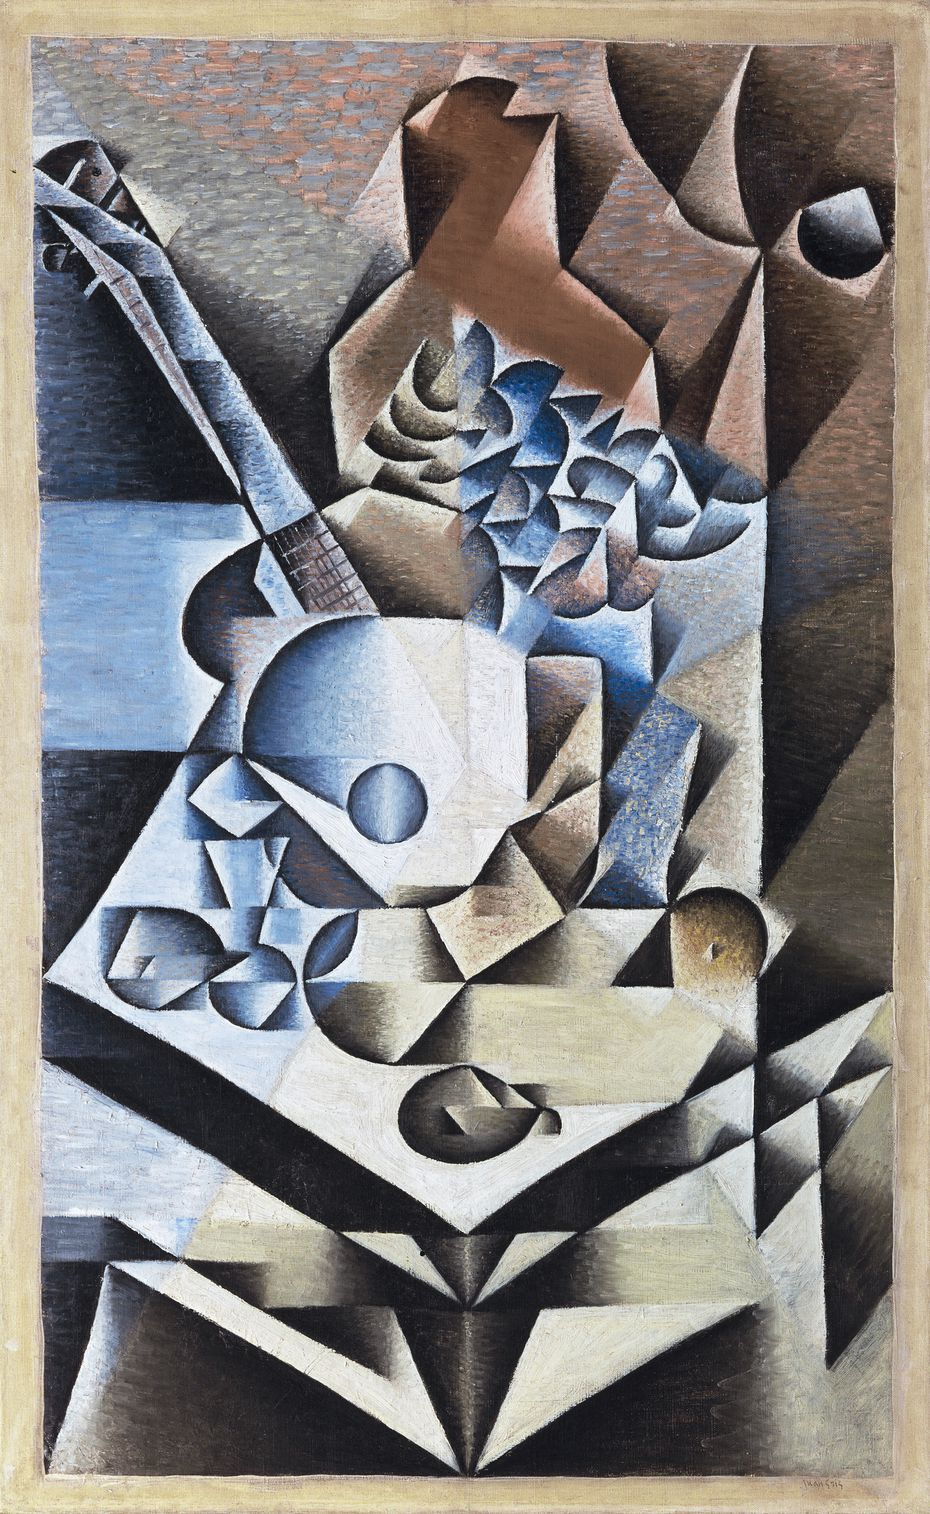 """Juan Gris' early cubist works, like the 1912 painting """"Still Life with Flowers,"""" were done in the analytical style."""